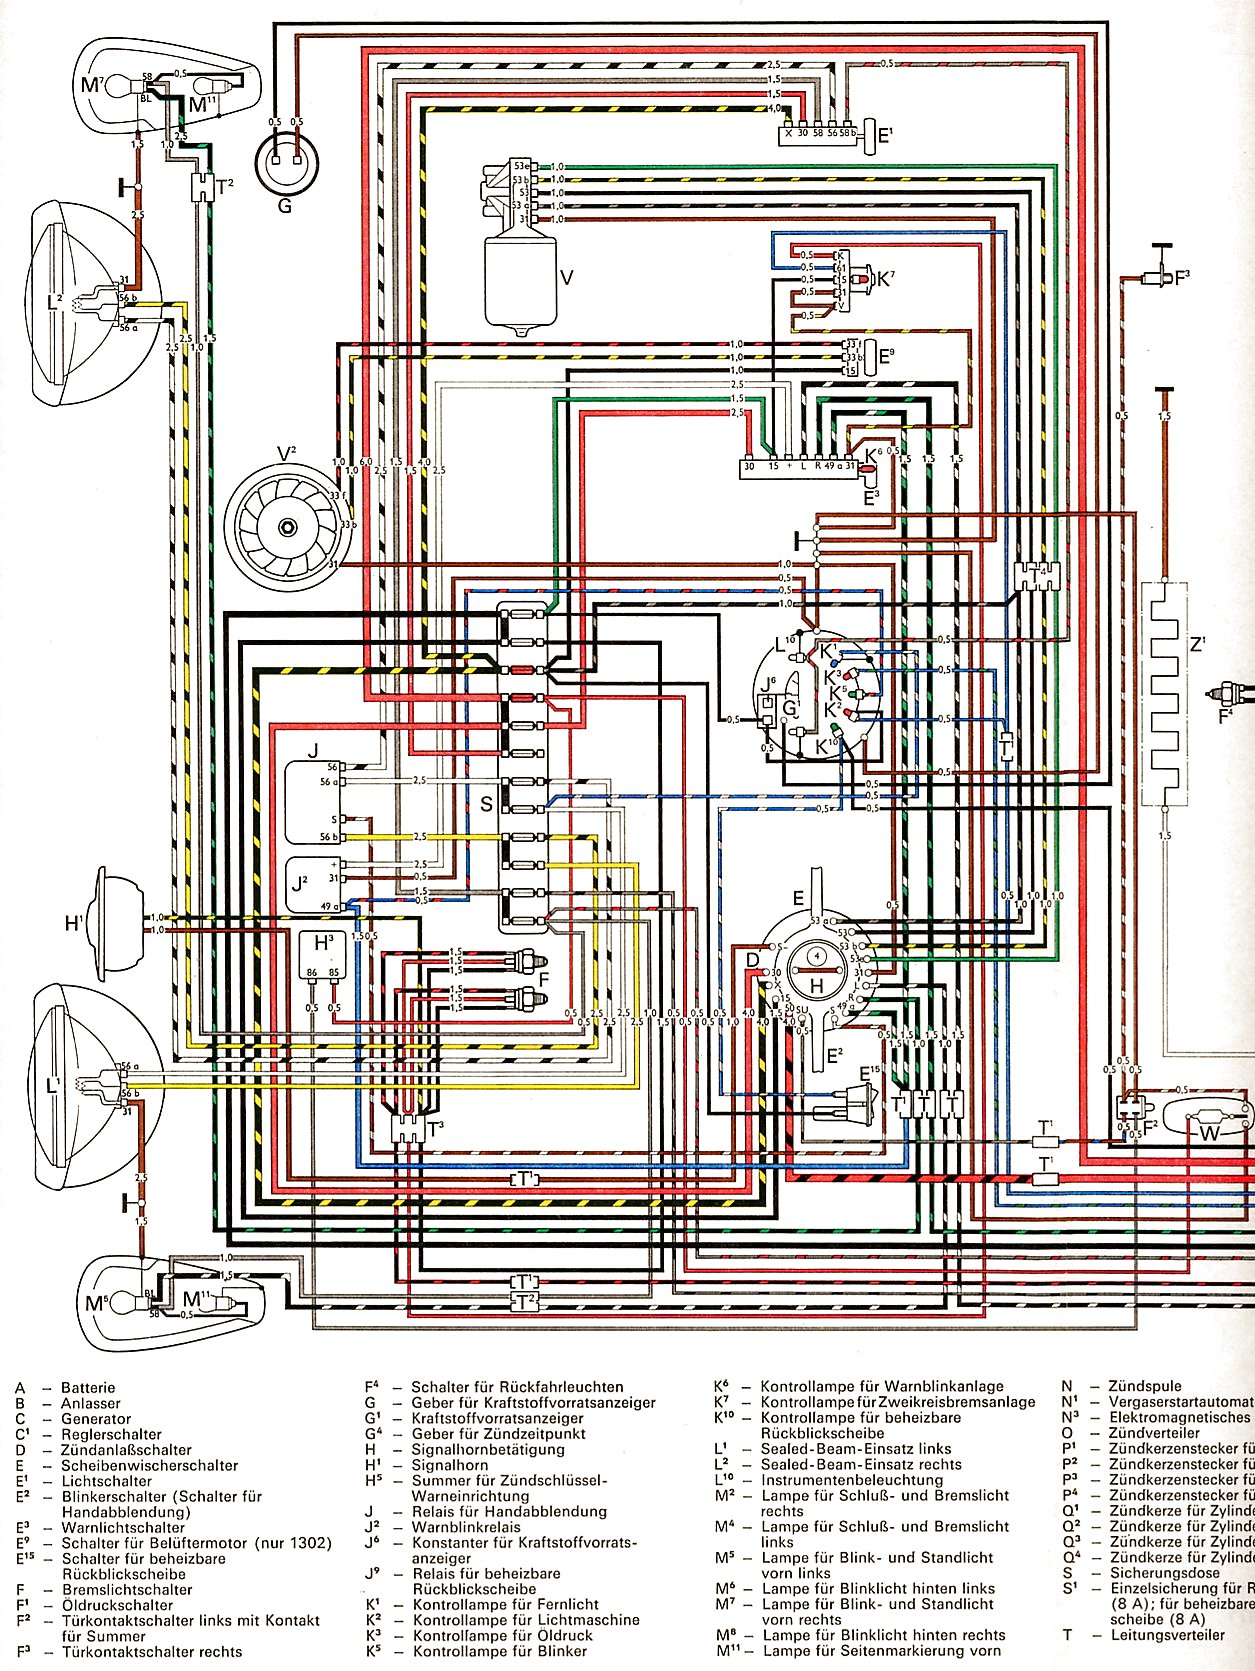 74 Beetle Wiring Diagram For Lights On Reveolution Of 1981 Super Need 1974 Standard Fuse Panel Help Shoptalkforums Com Rh 1964 Vw 1973 Volkswagen